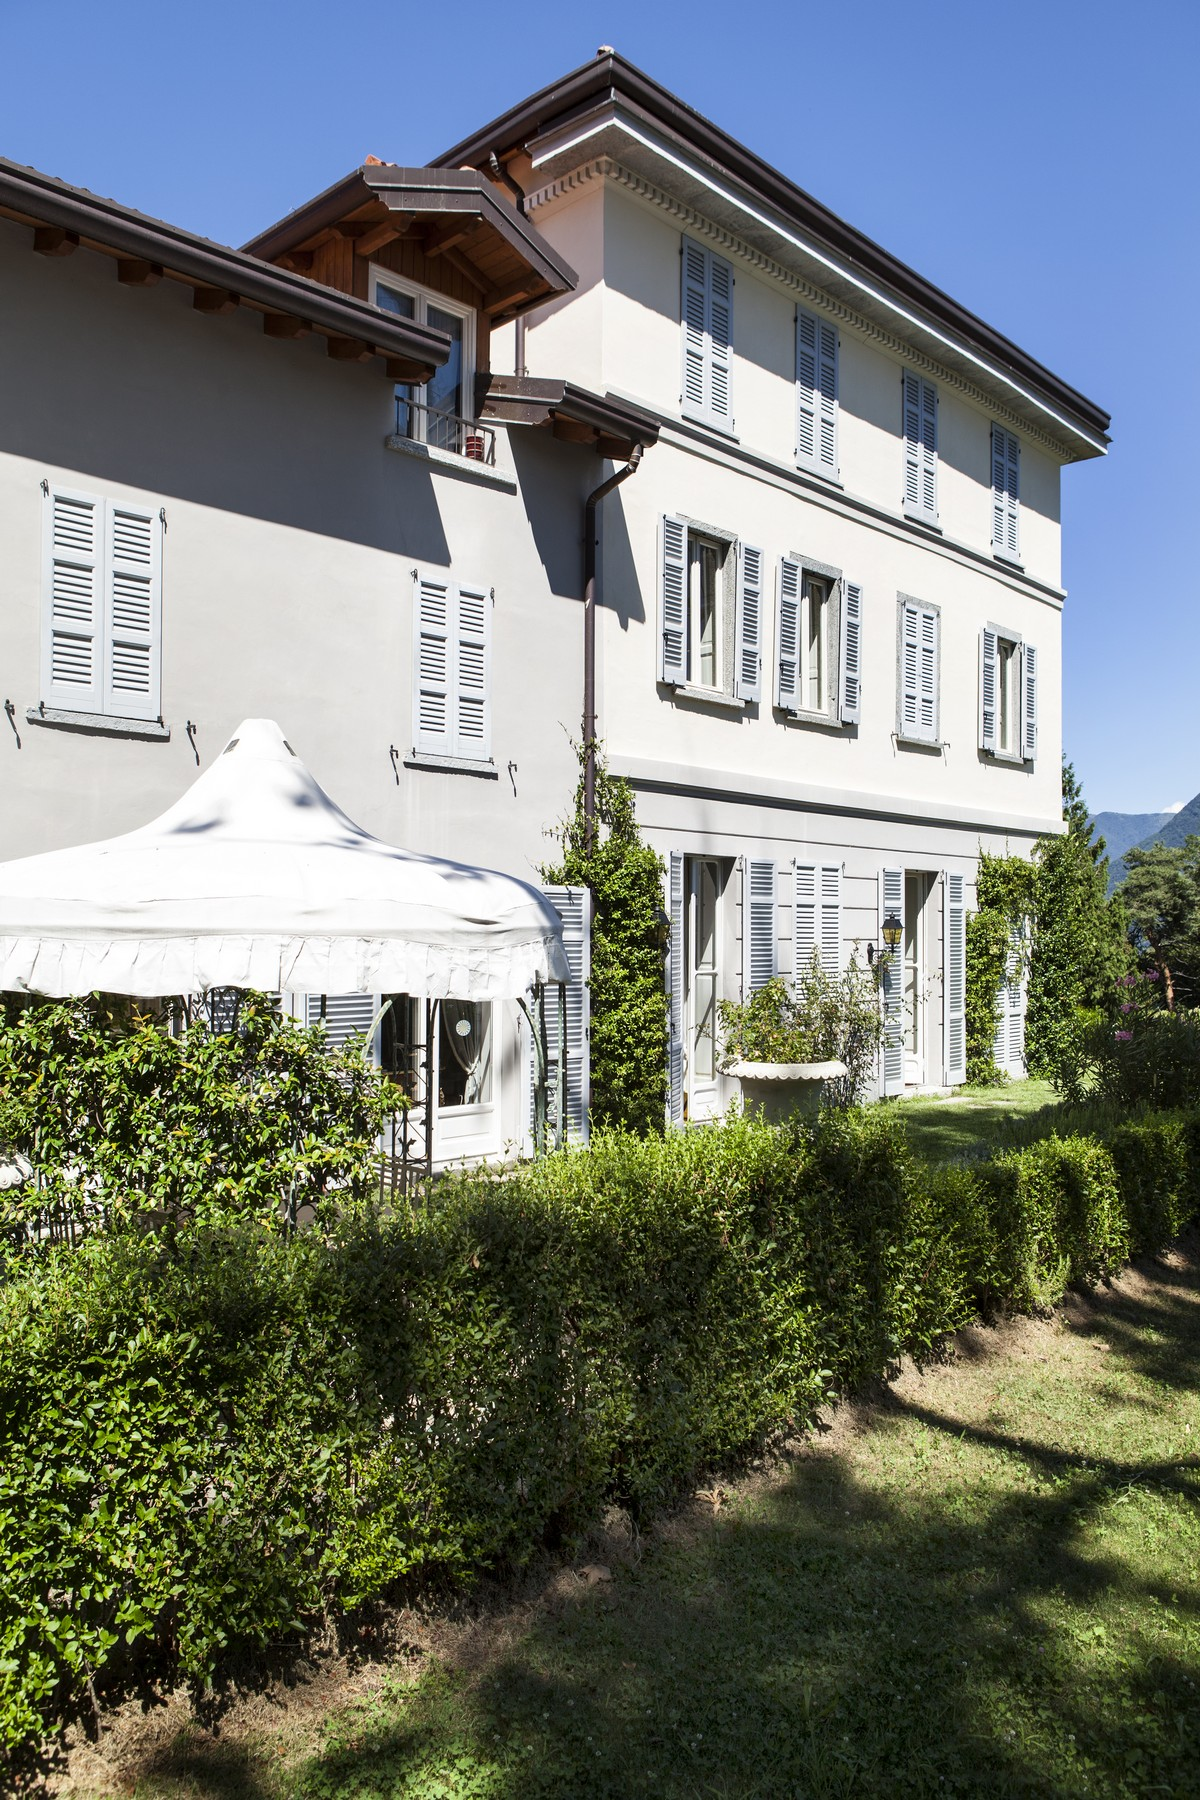 Additional photo for property listing at Wonderful apartment set in the luxurious villa Eros Via Cardano Como, Como 22100 Italia